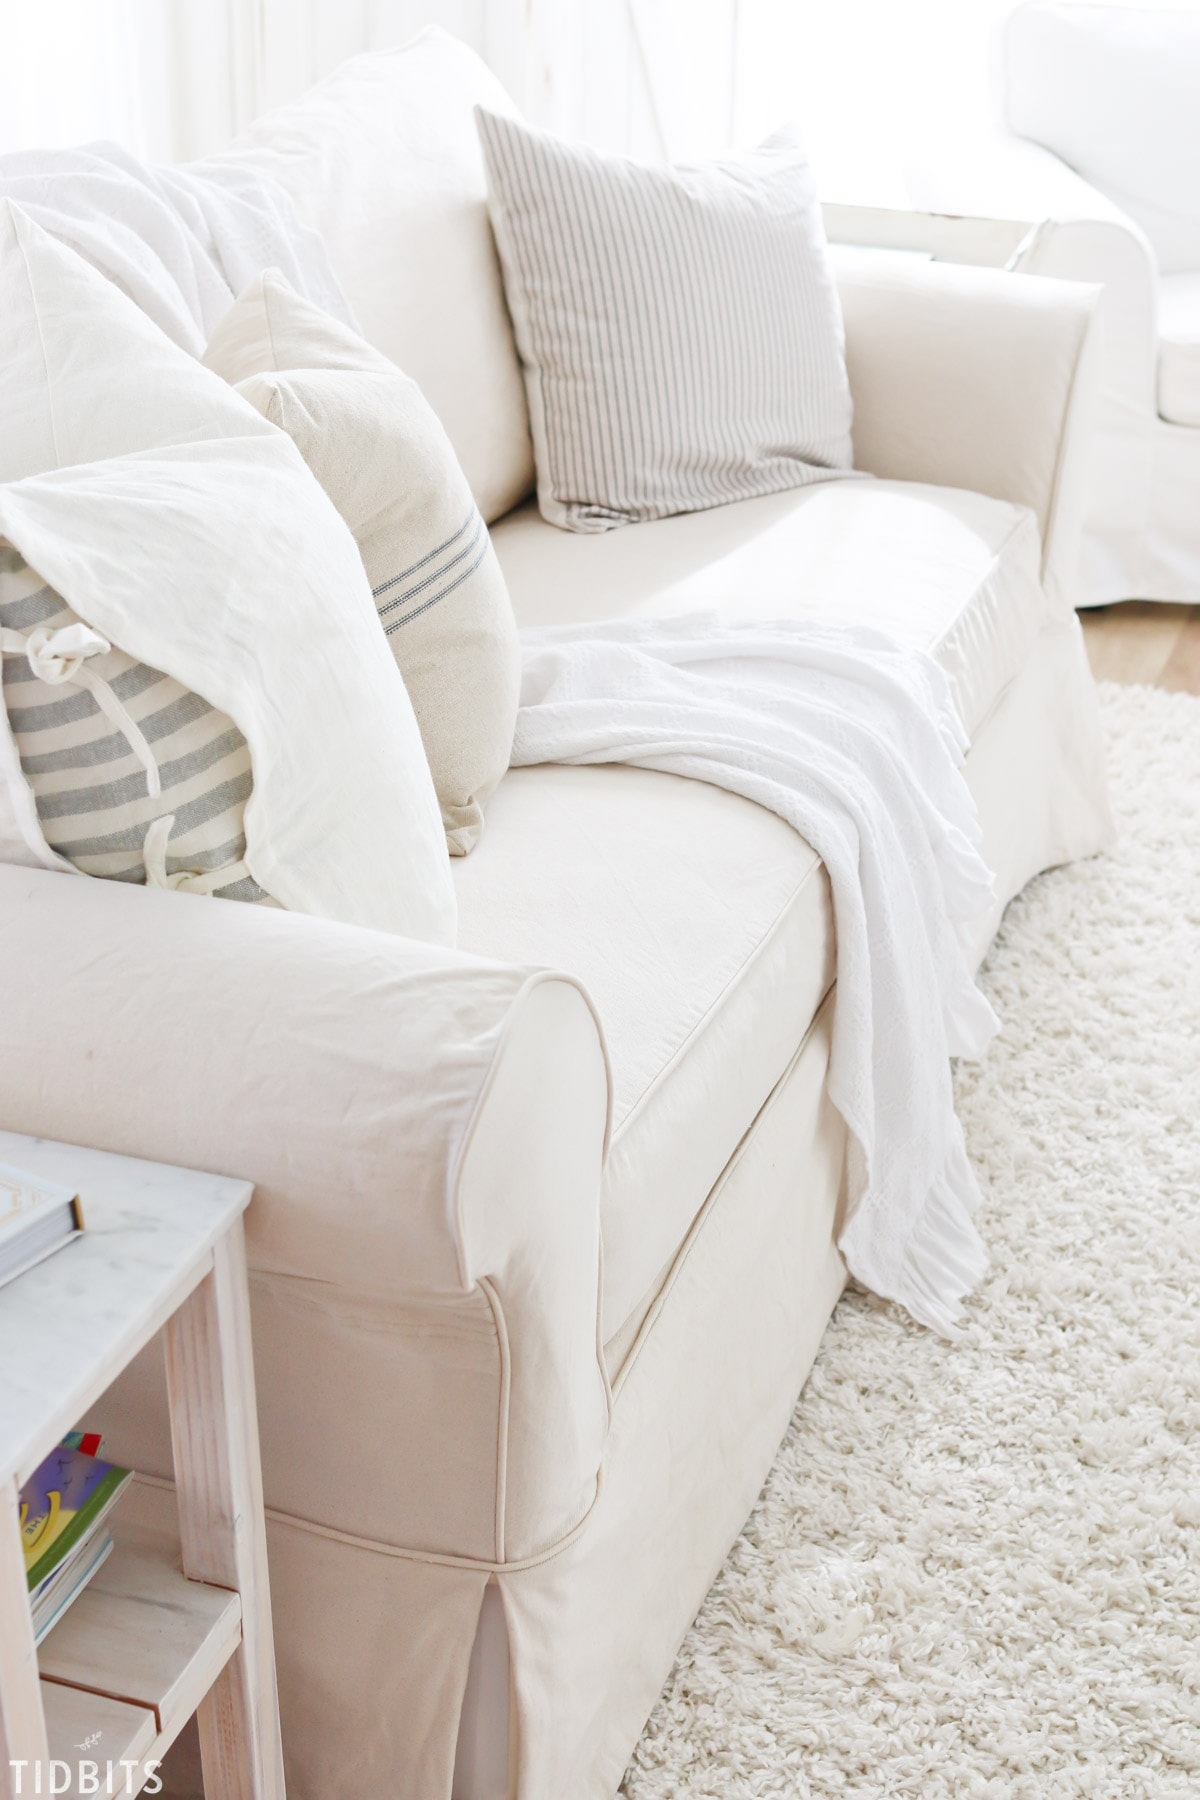 how to clean white denim slipcovers